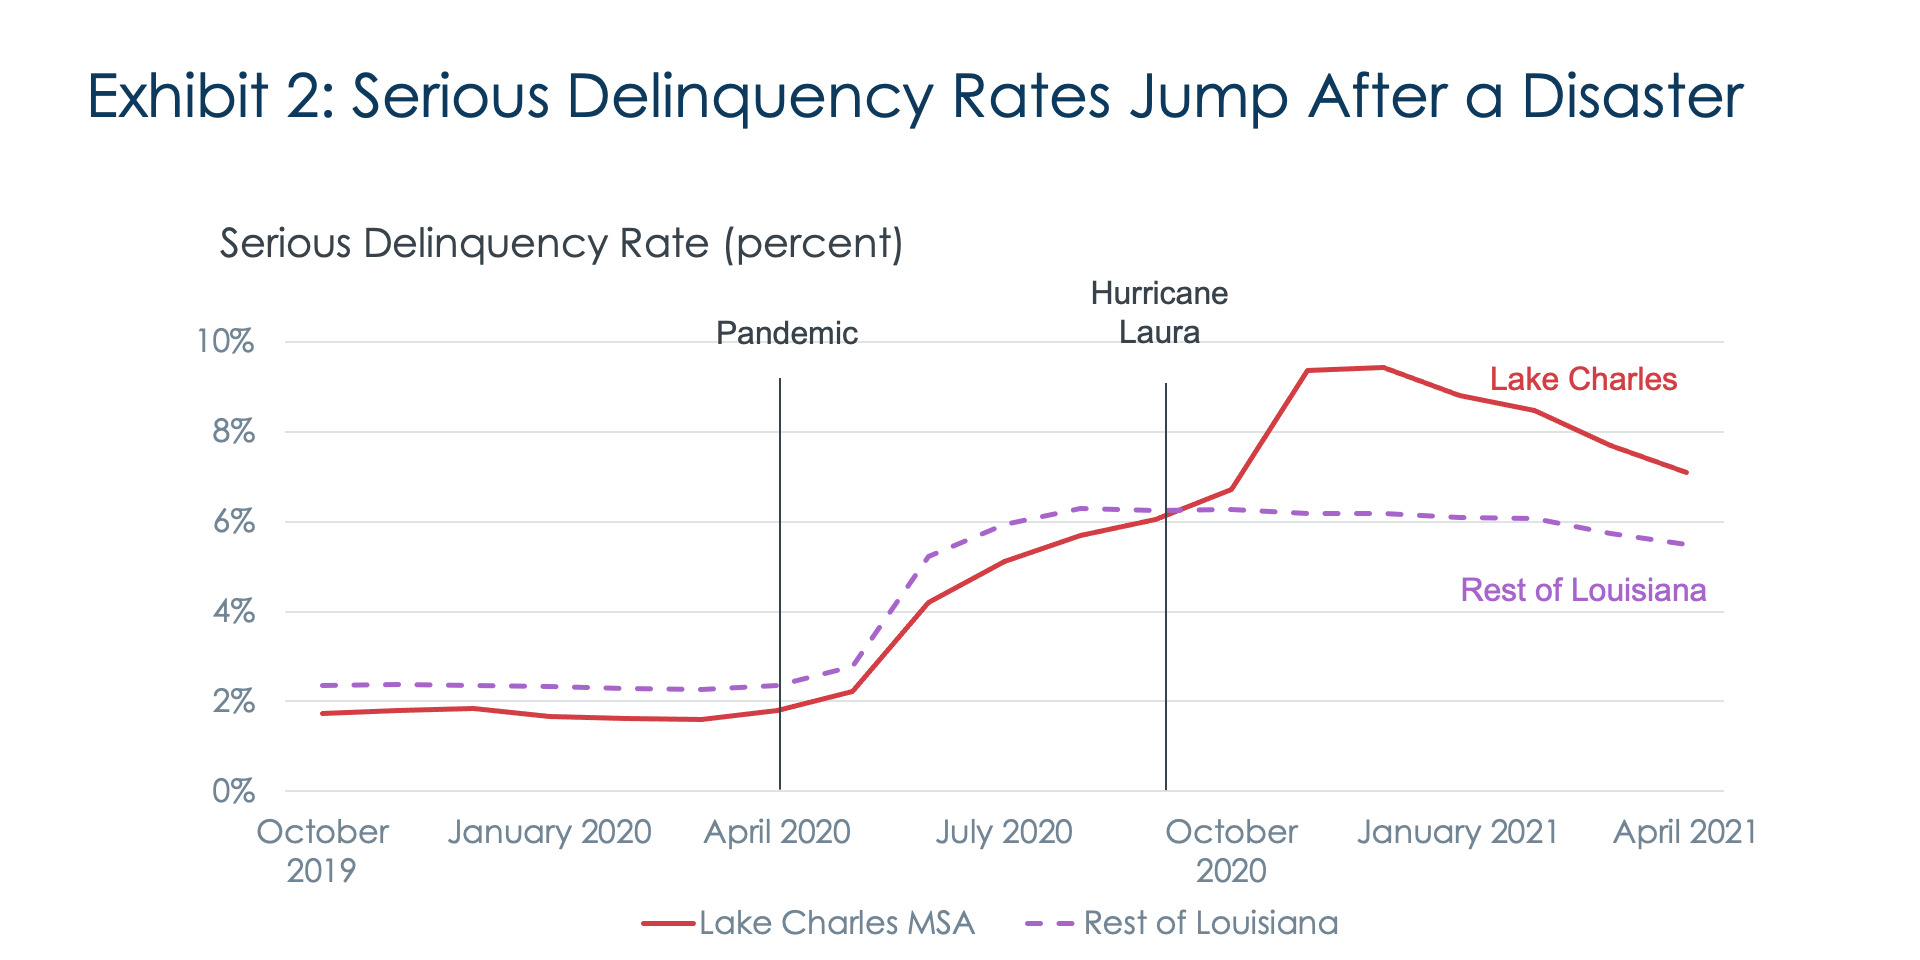 Exhibit 2: Serious Delinquency Rates Jump After a Disaster